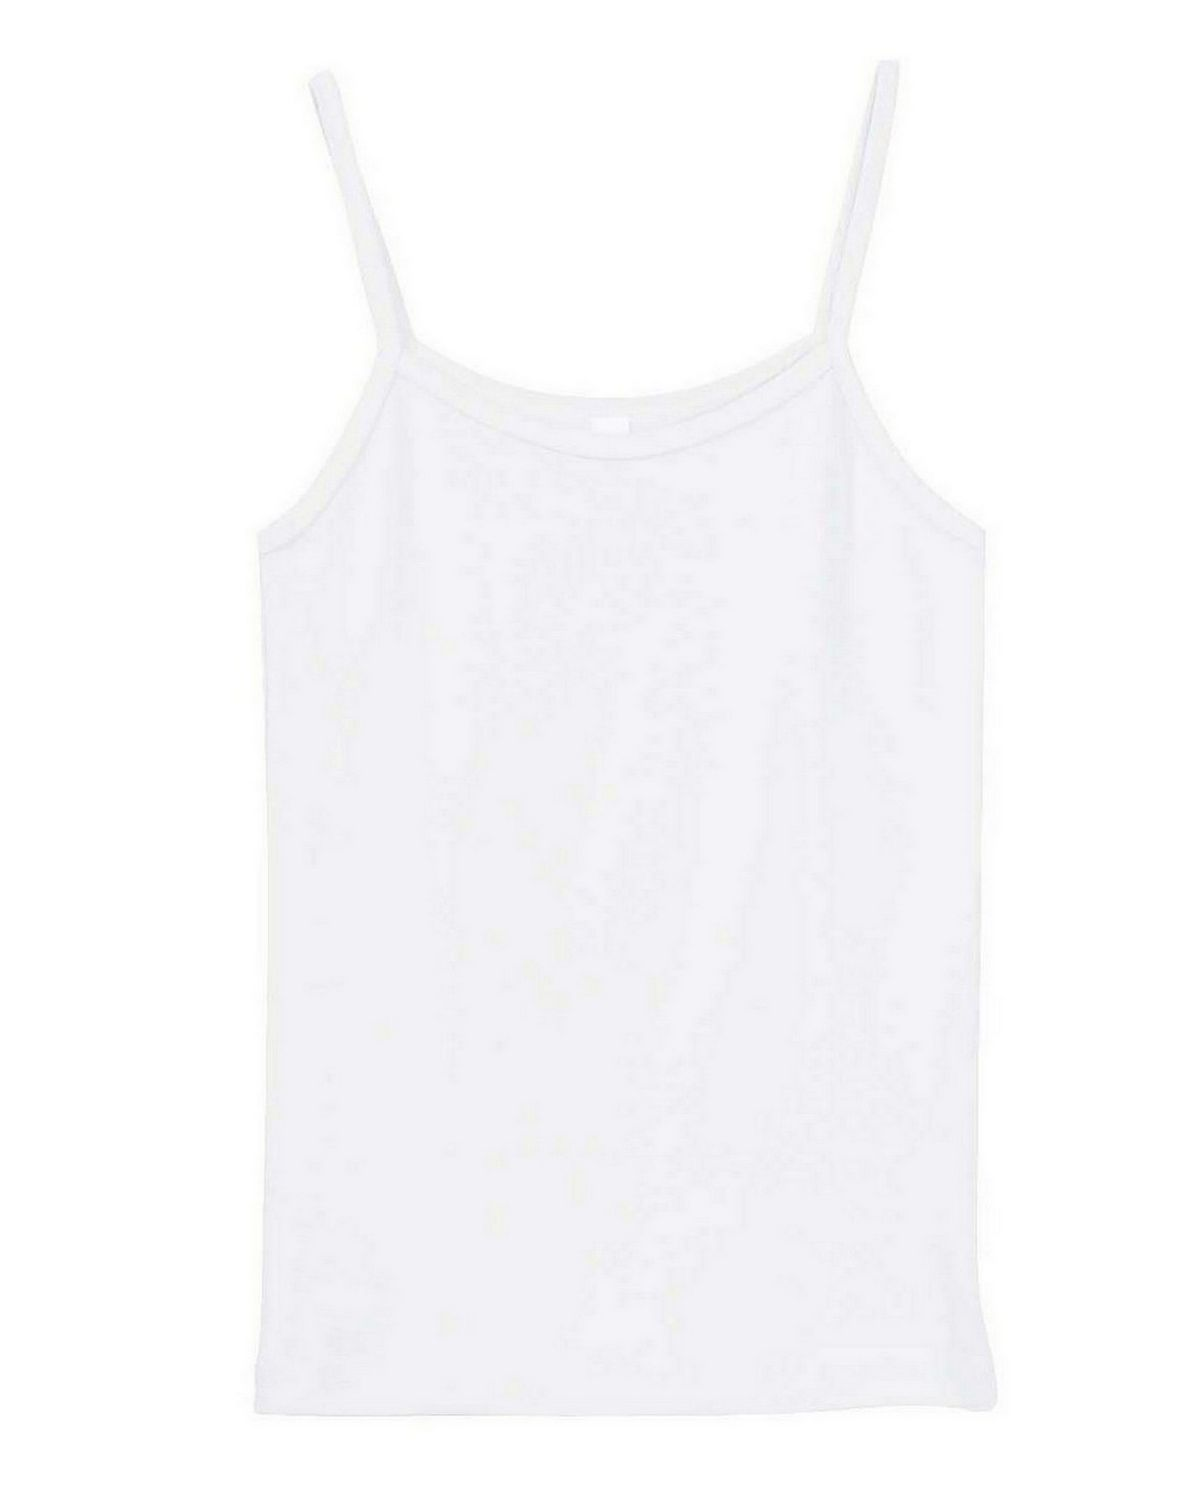 Bella + Canvas 1011 Ladies Stretch Rib Spaghetti Strap Tank - White - S 1011